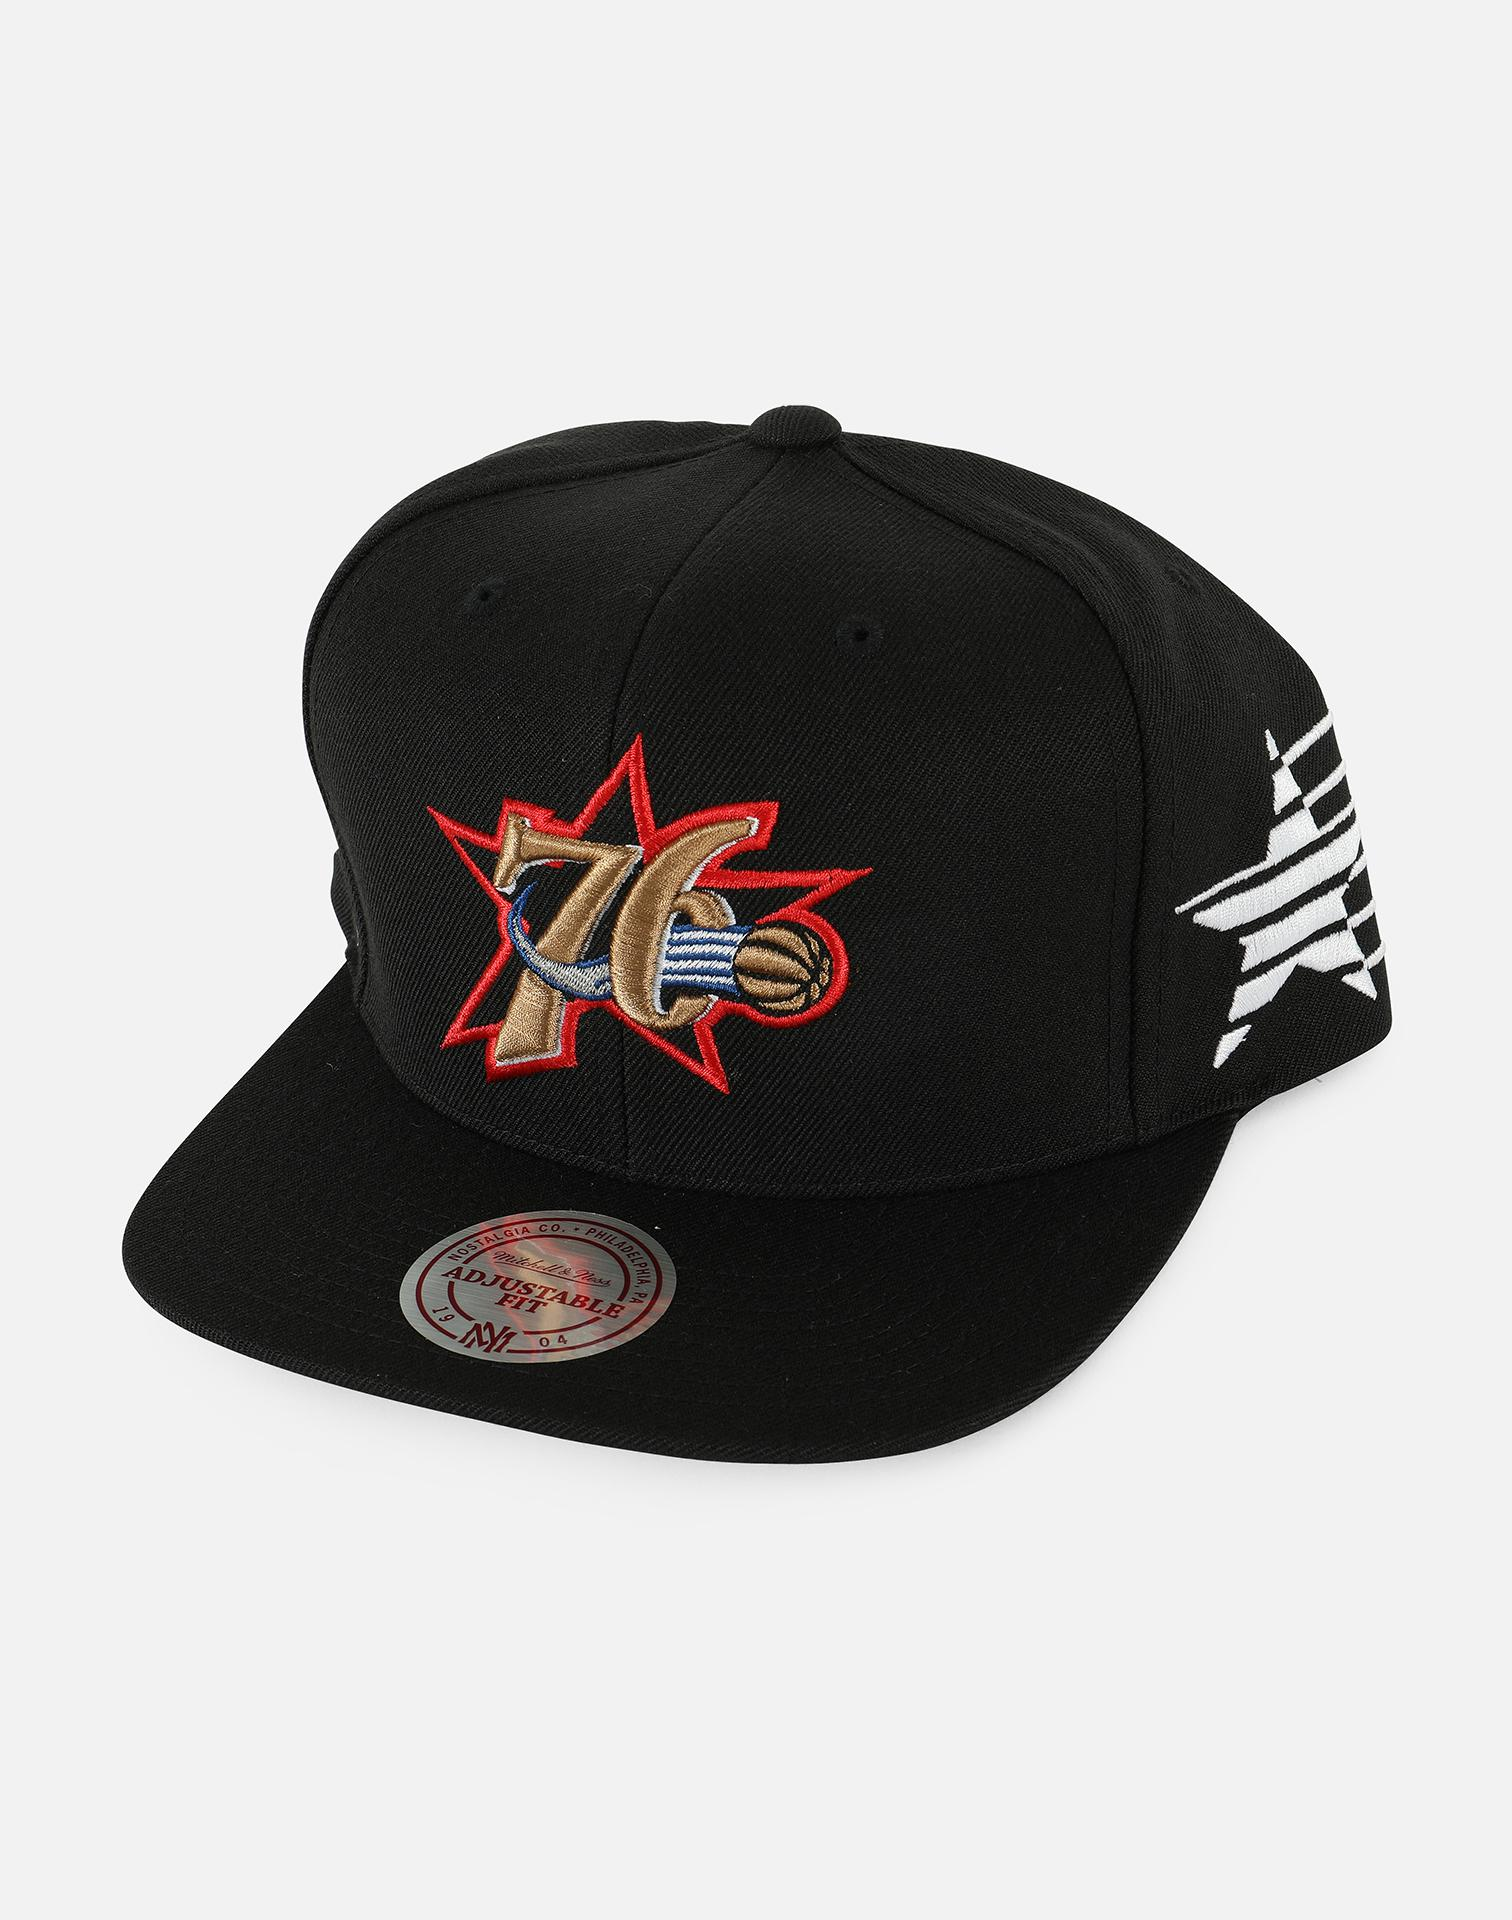 huge selection of cheap prices buy best netherlands san antonio spurs mitchell ness nba rubber weld ...